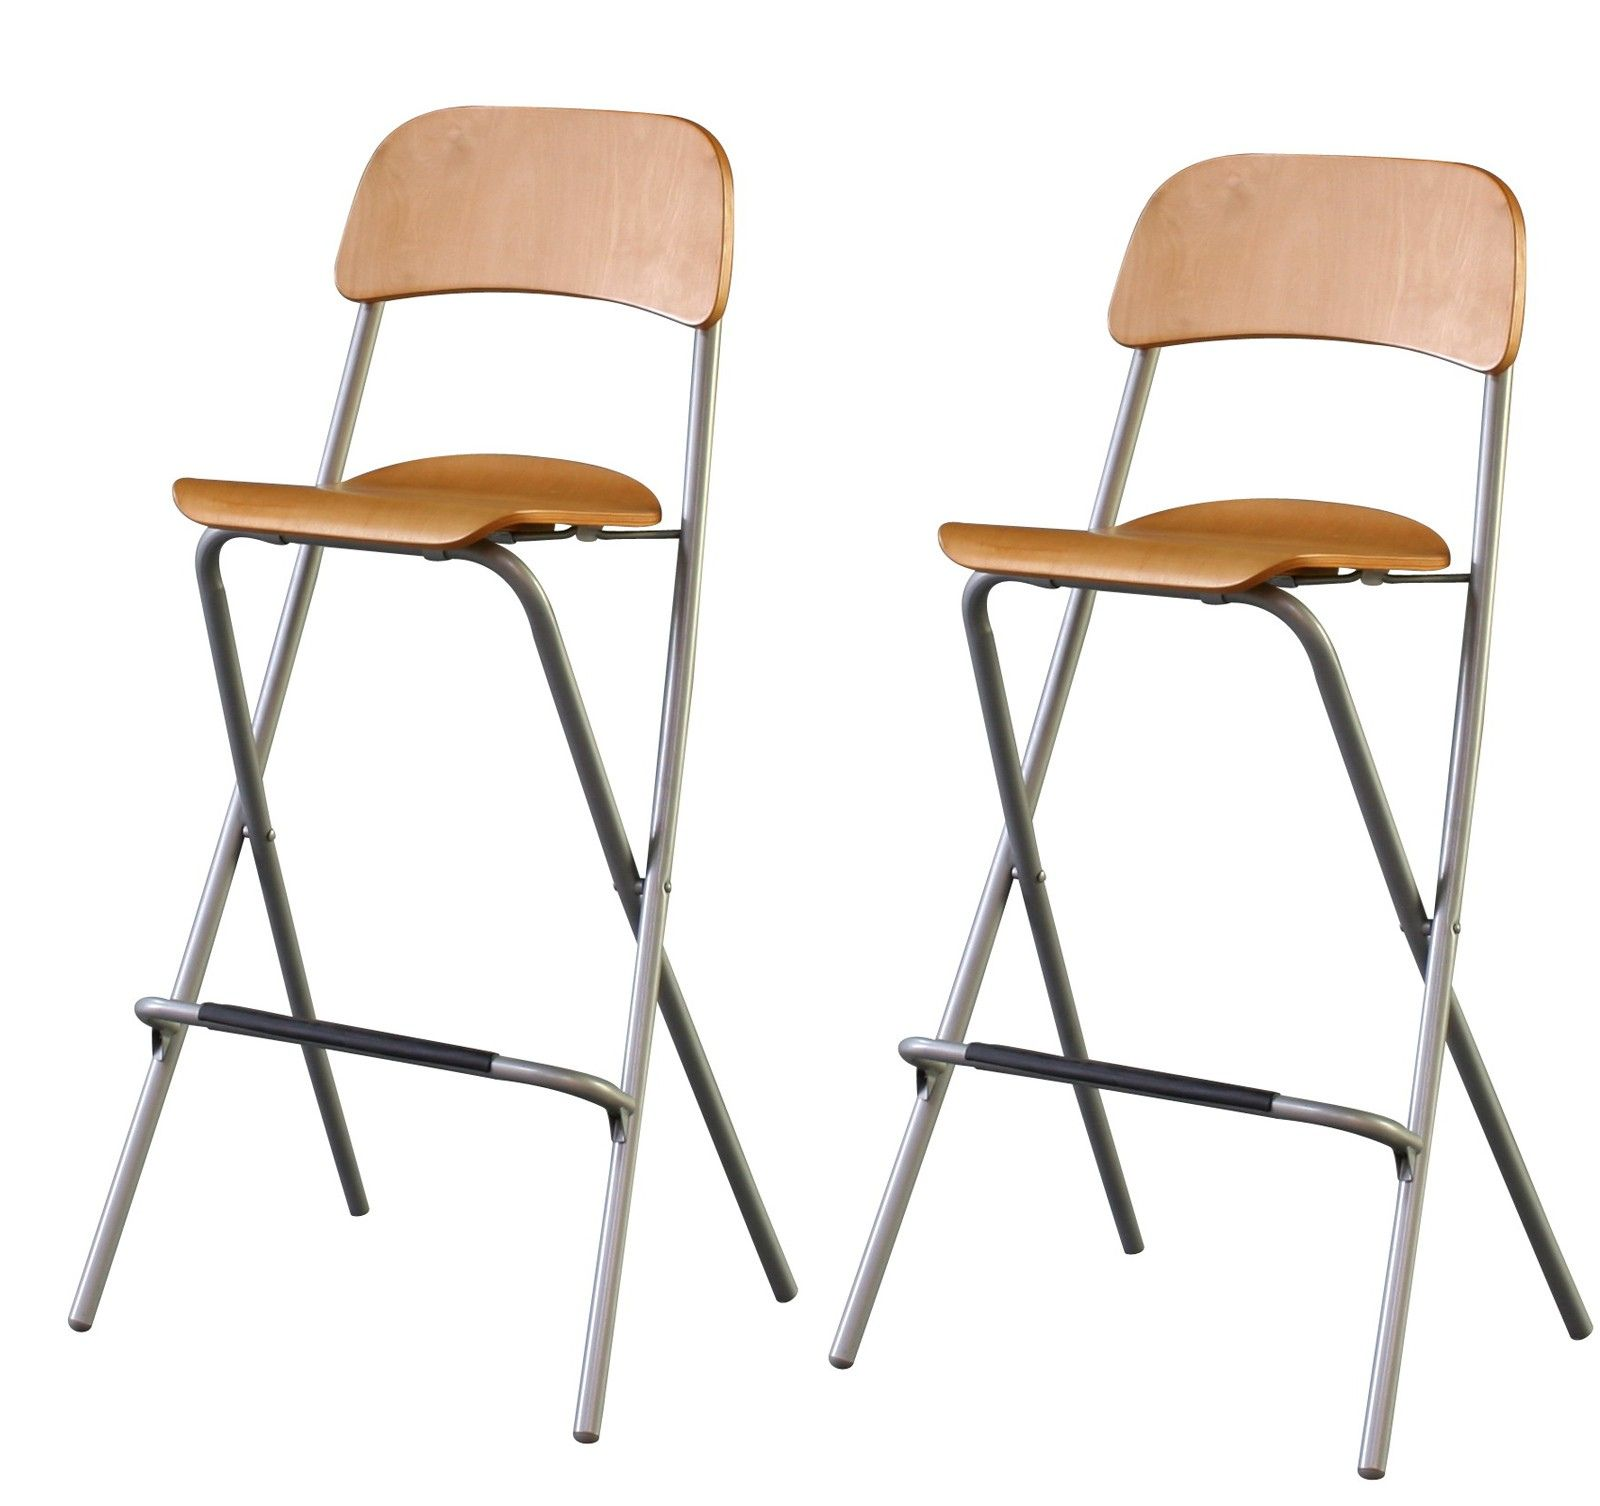 walmart ip stool slat multiple com bar mainstays folding colors stools back barstool bronze